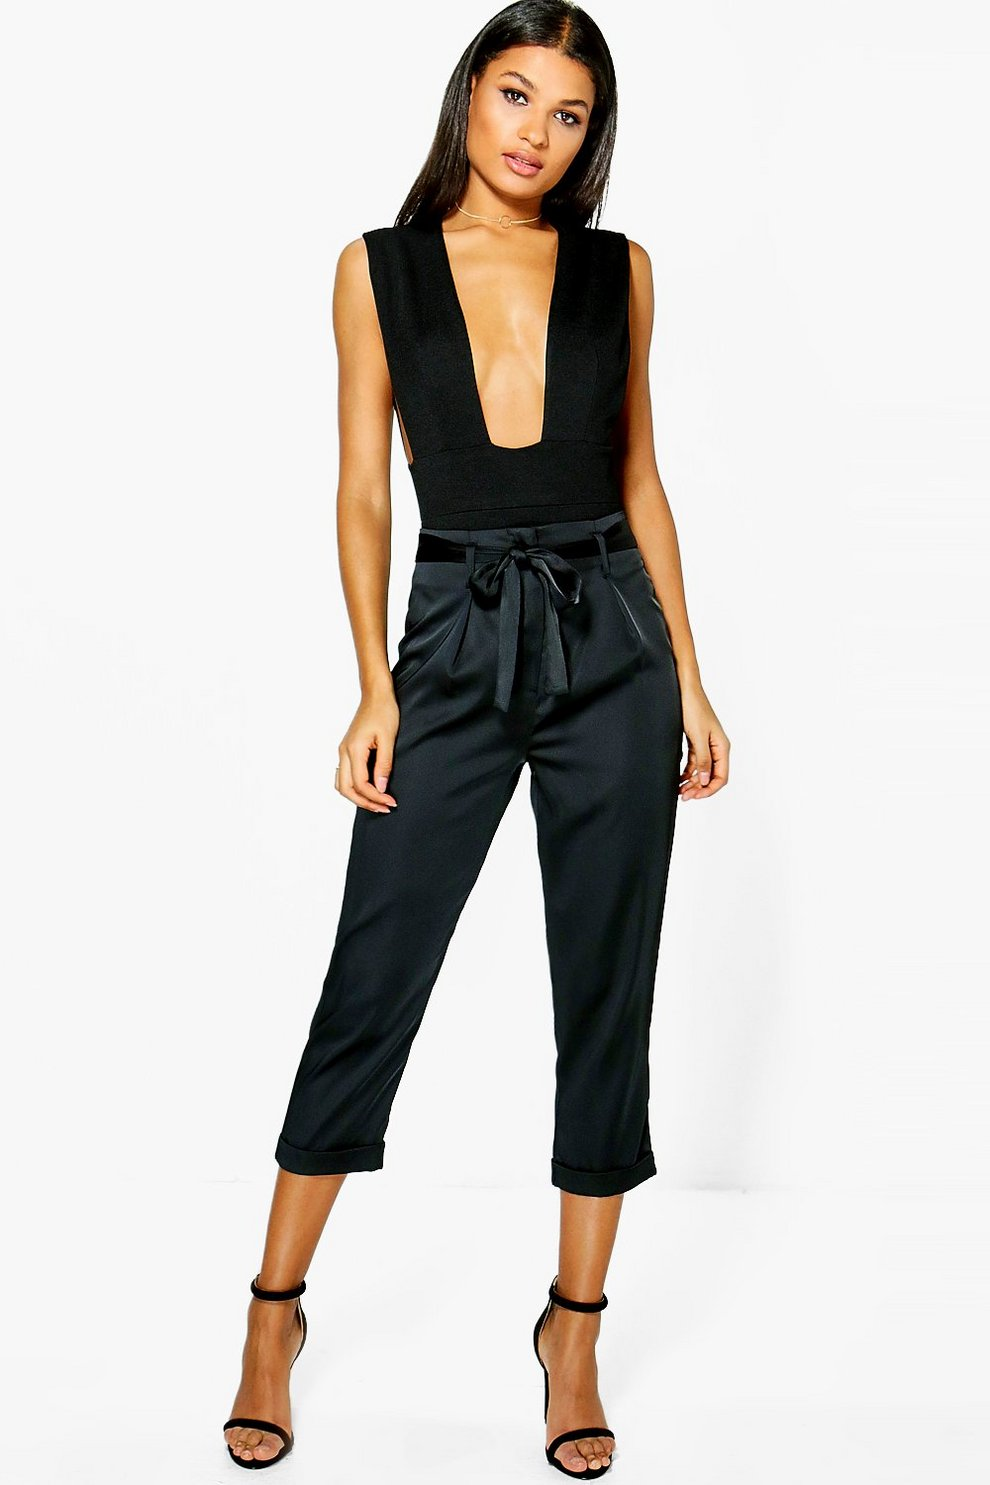 Clearance With Credit Card Cheap Sale Visa Payment cropped trousers - Black The Great. Countdown Package Buy Cheap Latest Free Shipping Perfect SbhwoqoT